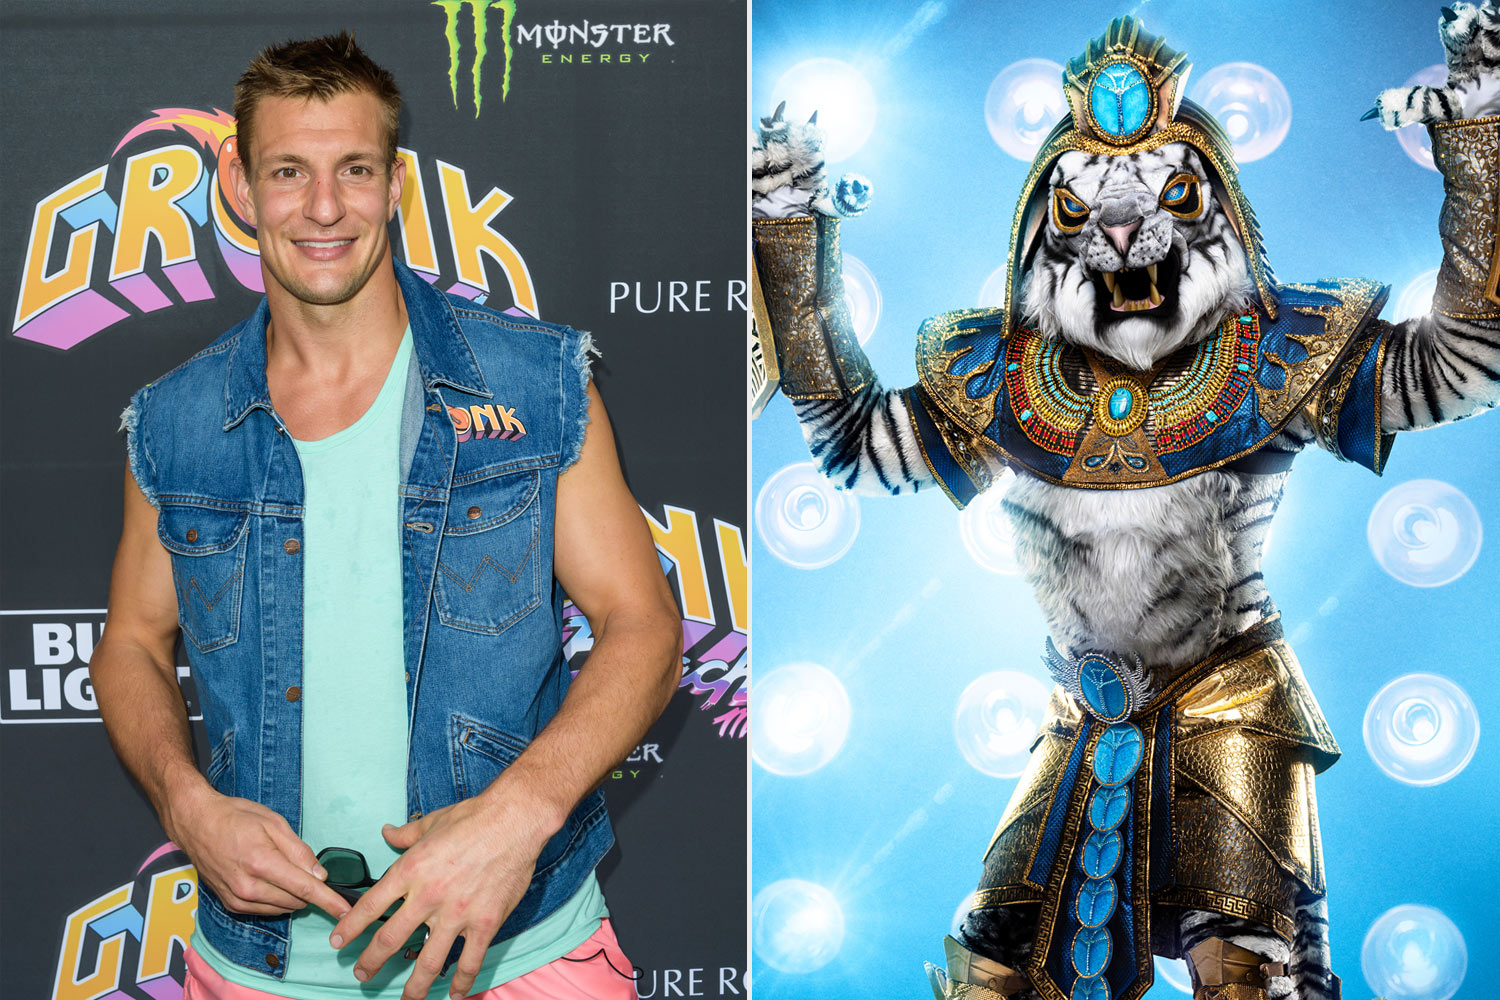 Rob Gronkowski and White Tiger